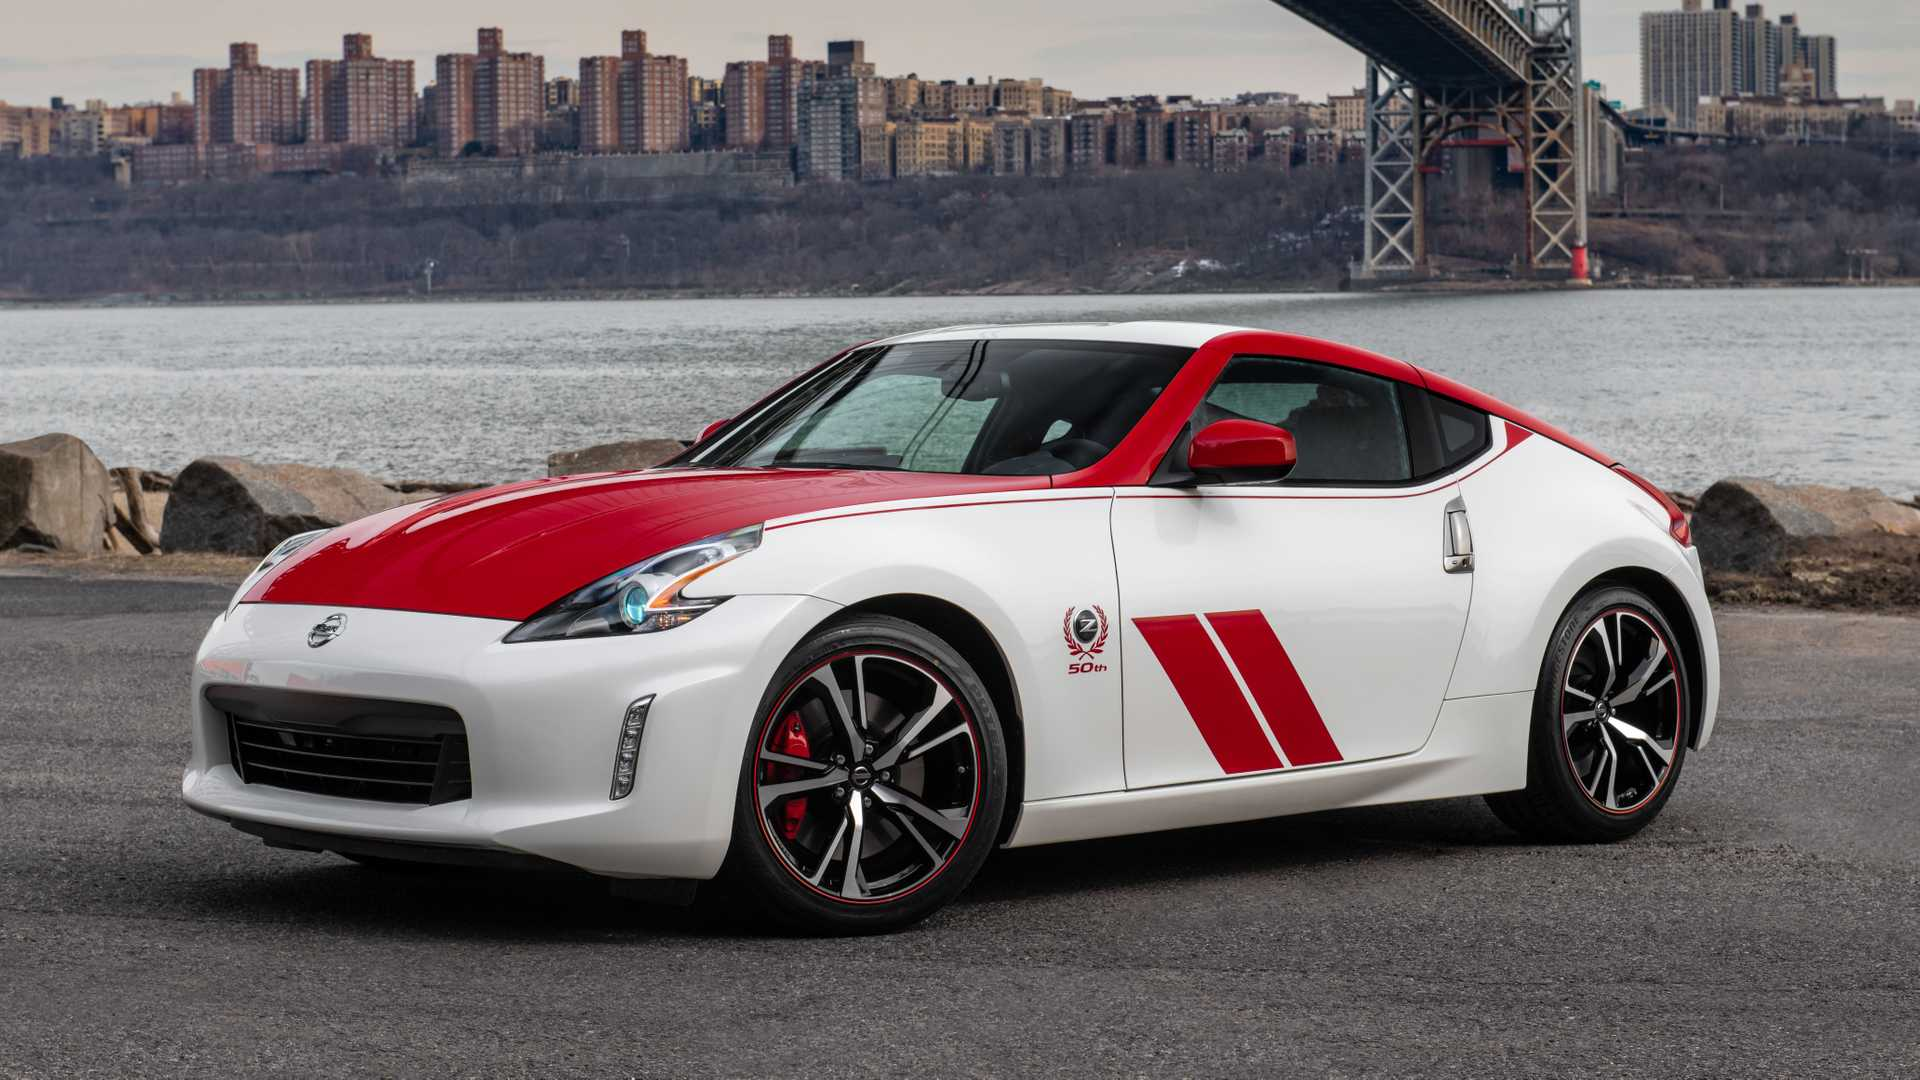 91 The 2020 Nissan 370Z Price Design And Review